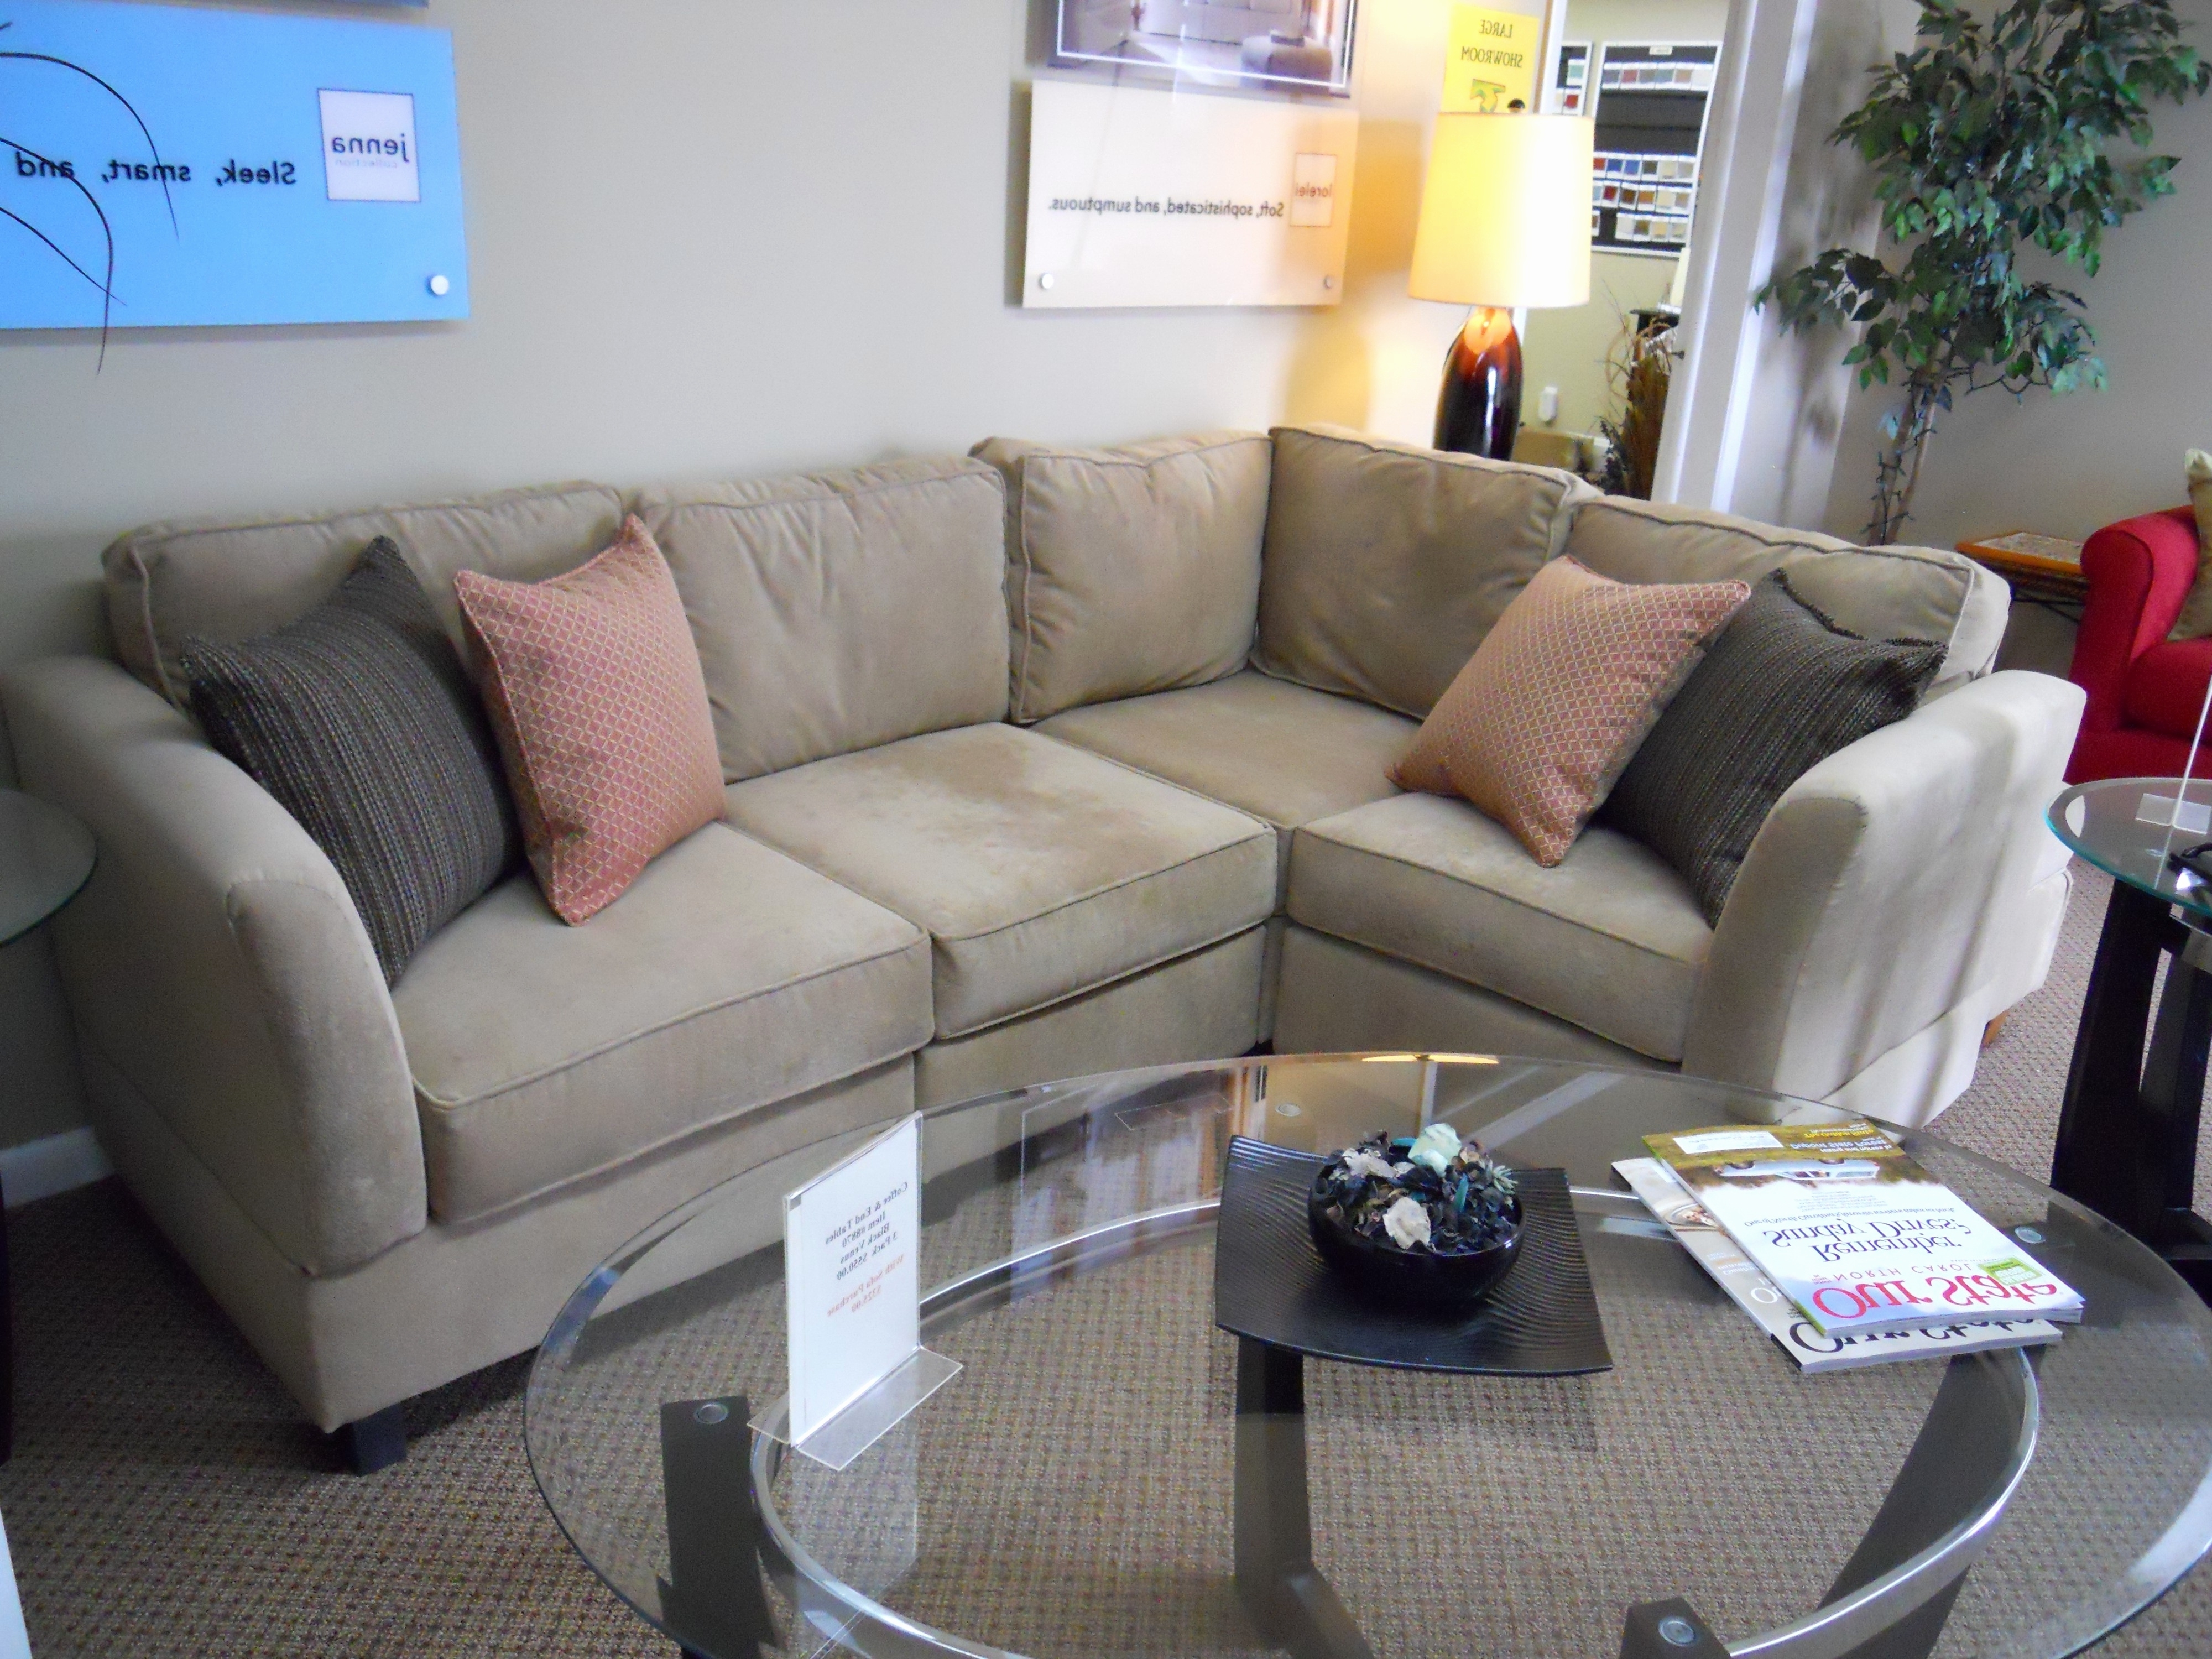 Trendy Kmart Sectional Sofas Pertaining To New Sofa Bed Under 300 2018 – Couches Ideas (View 5 of 15)